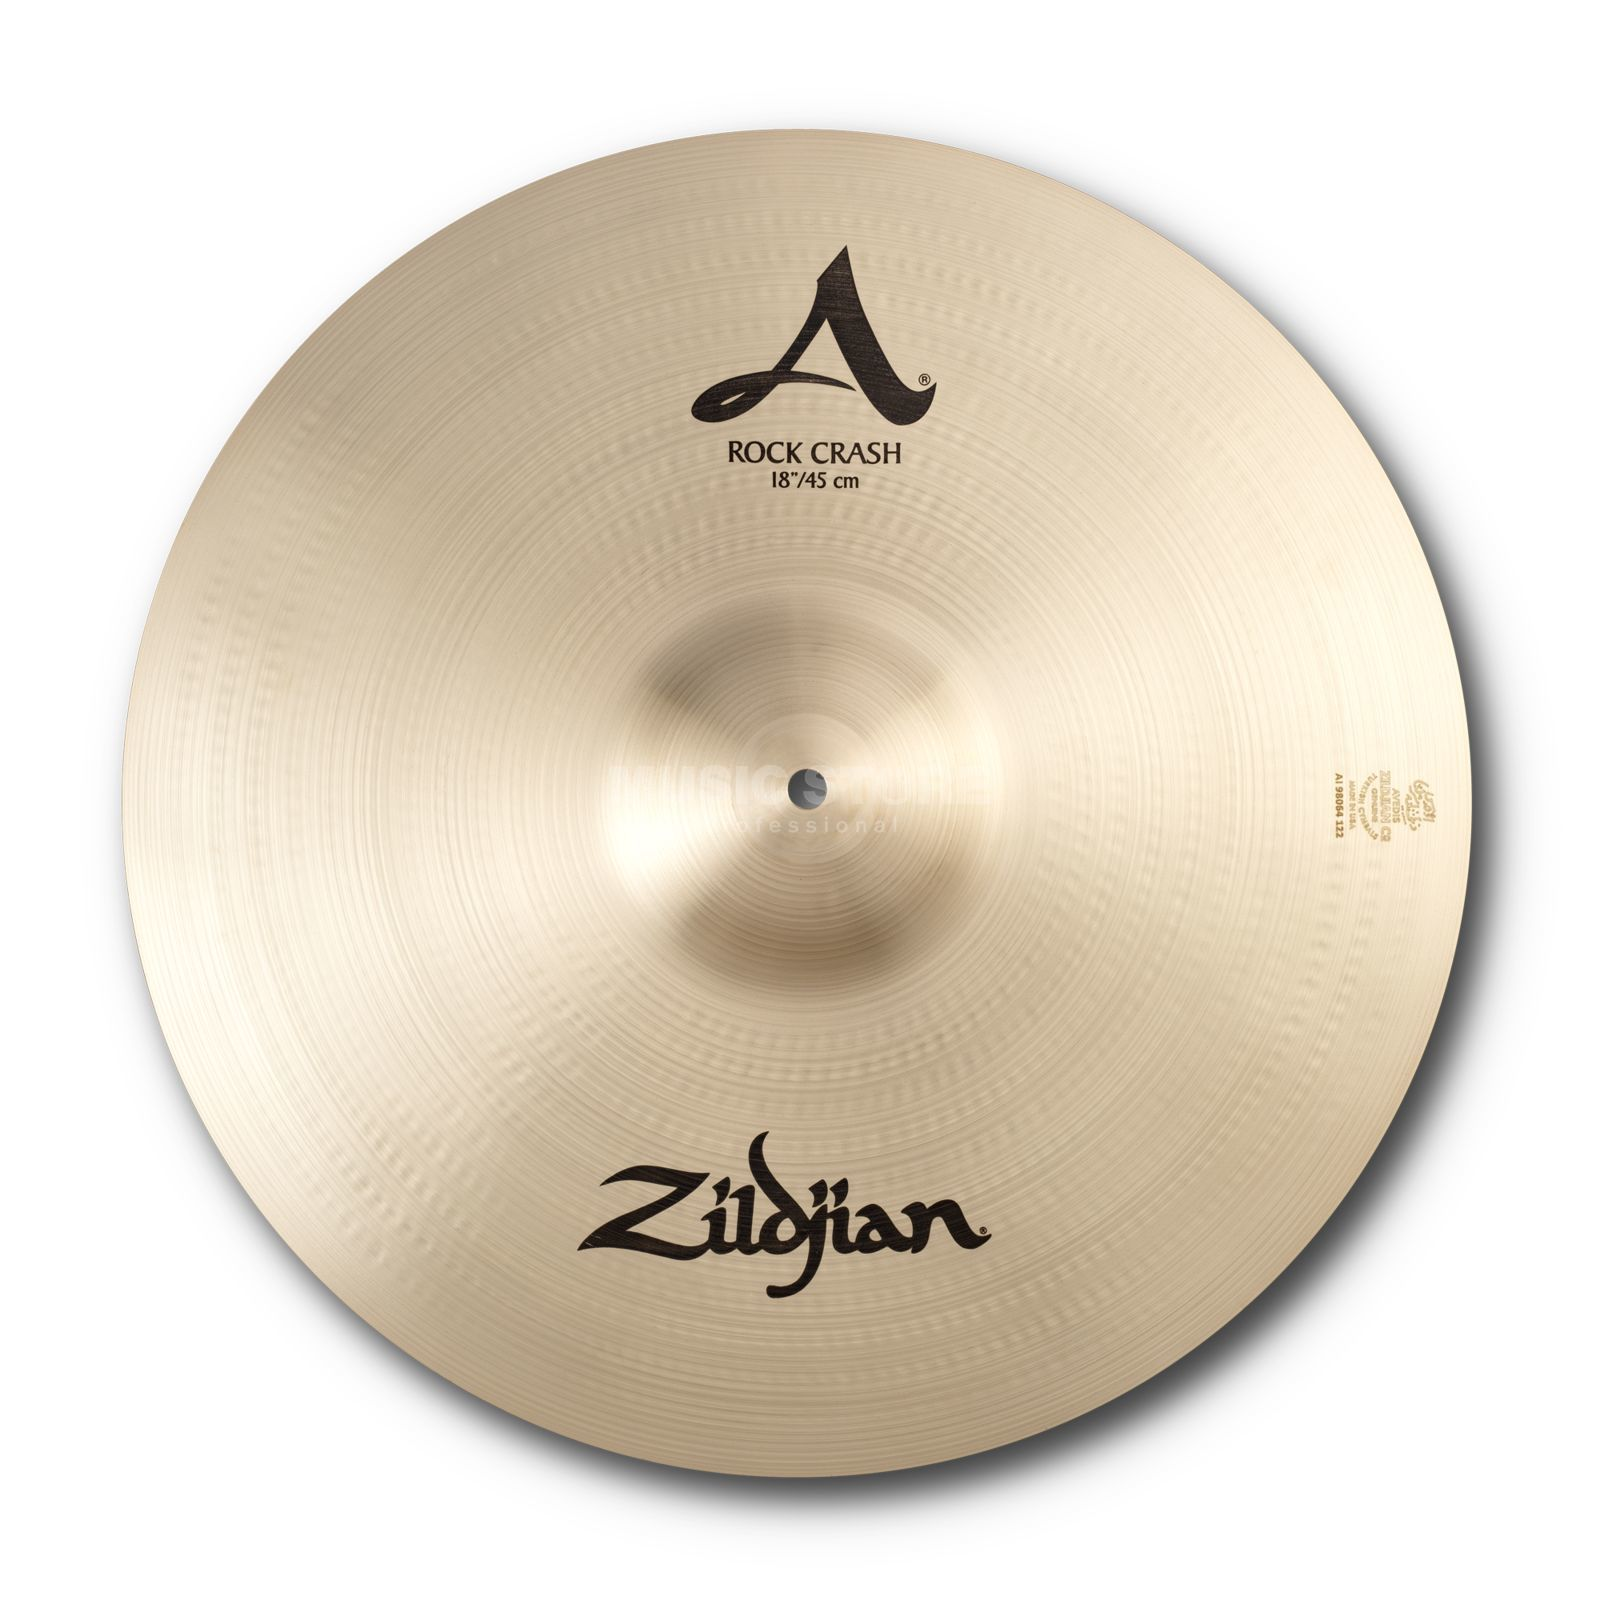 "Zildjian A' Zildjian Rock Crash 18"", Traditional Finish Produktbillede"